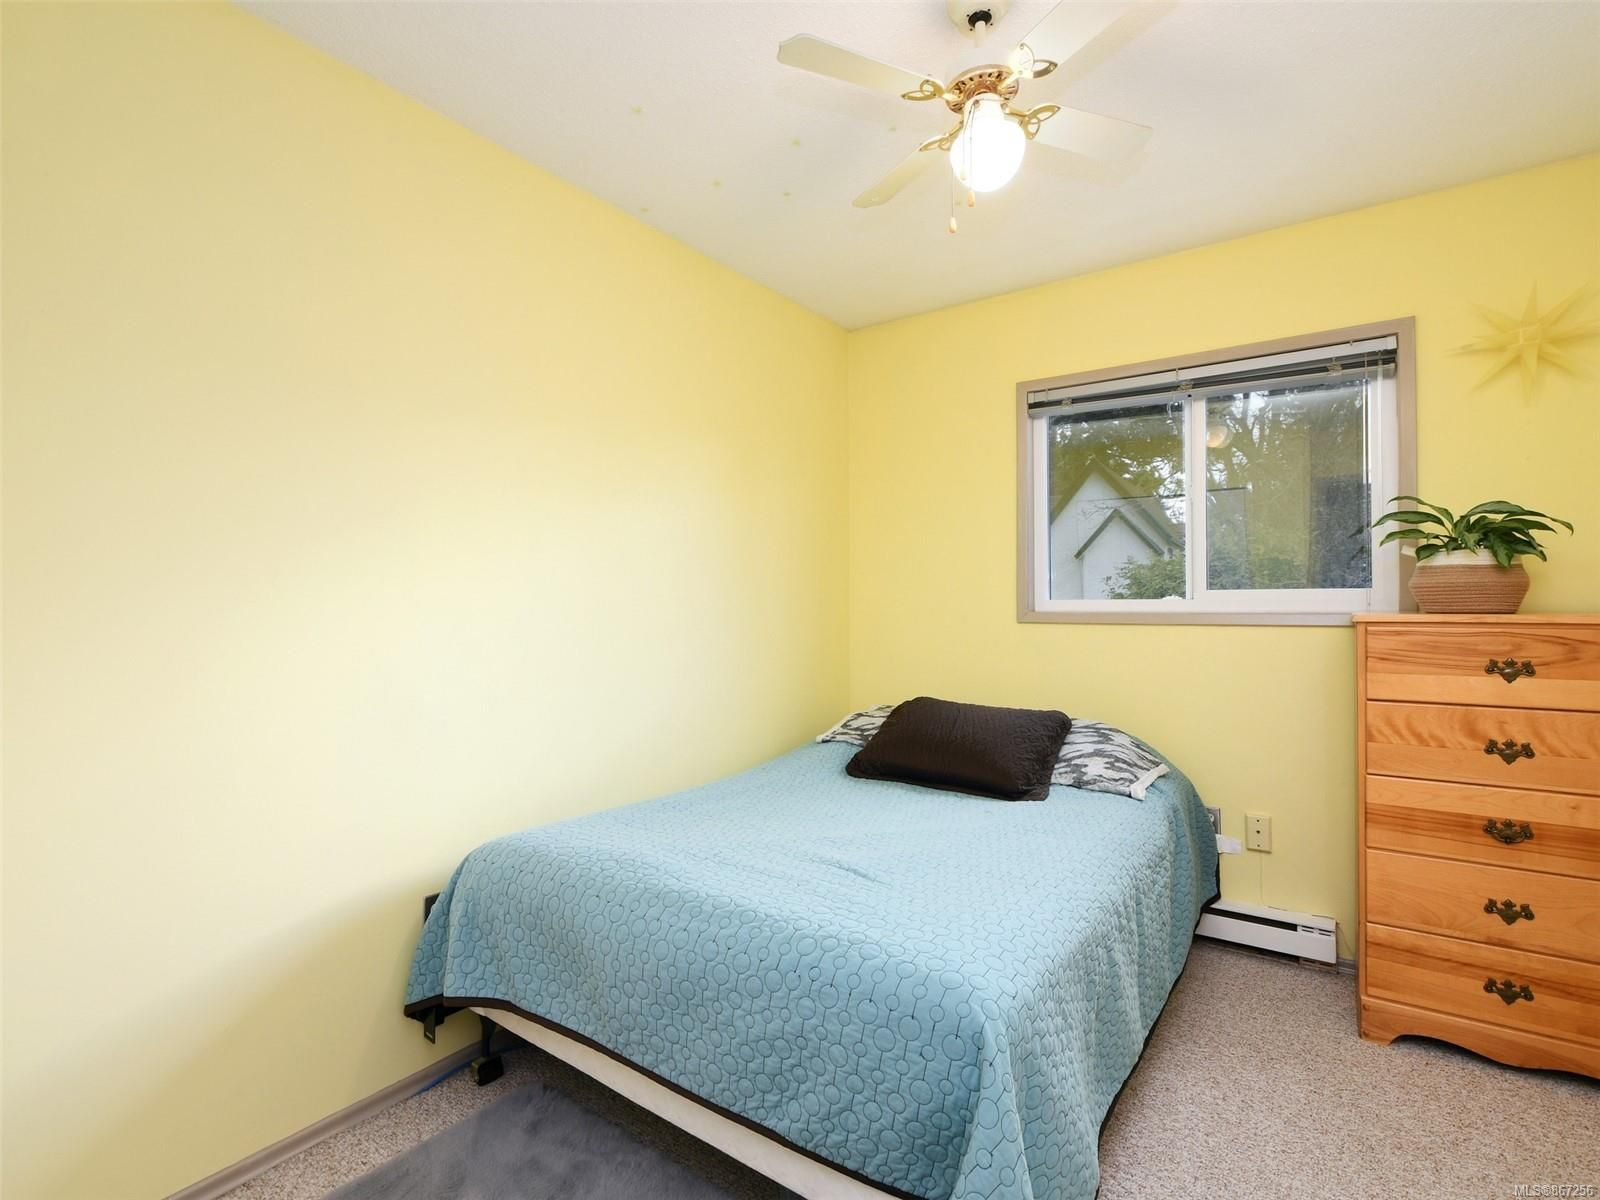 Photo 13: Photos: 5 869 Swan St in : SE Swan Lake Row/Townhouse for sale (Saanich East)  : MLS®# 867256